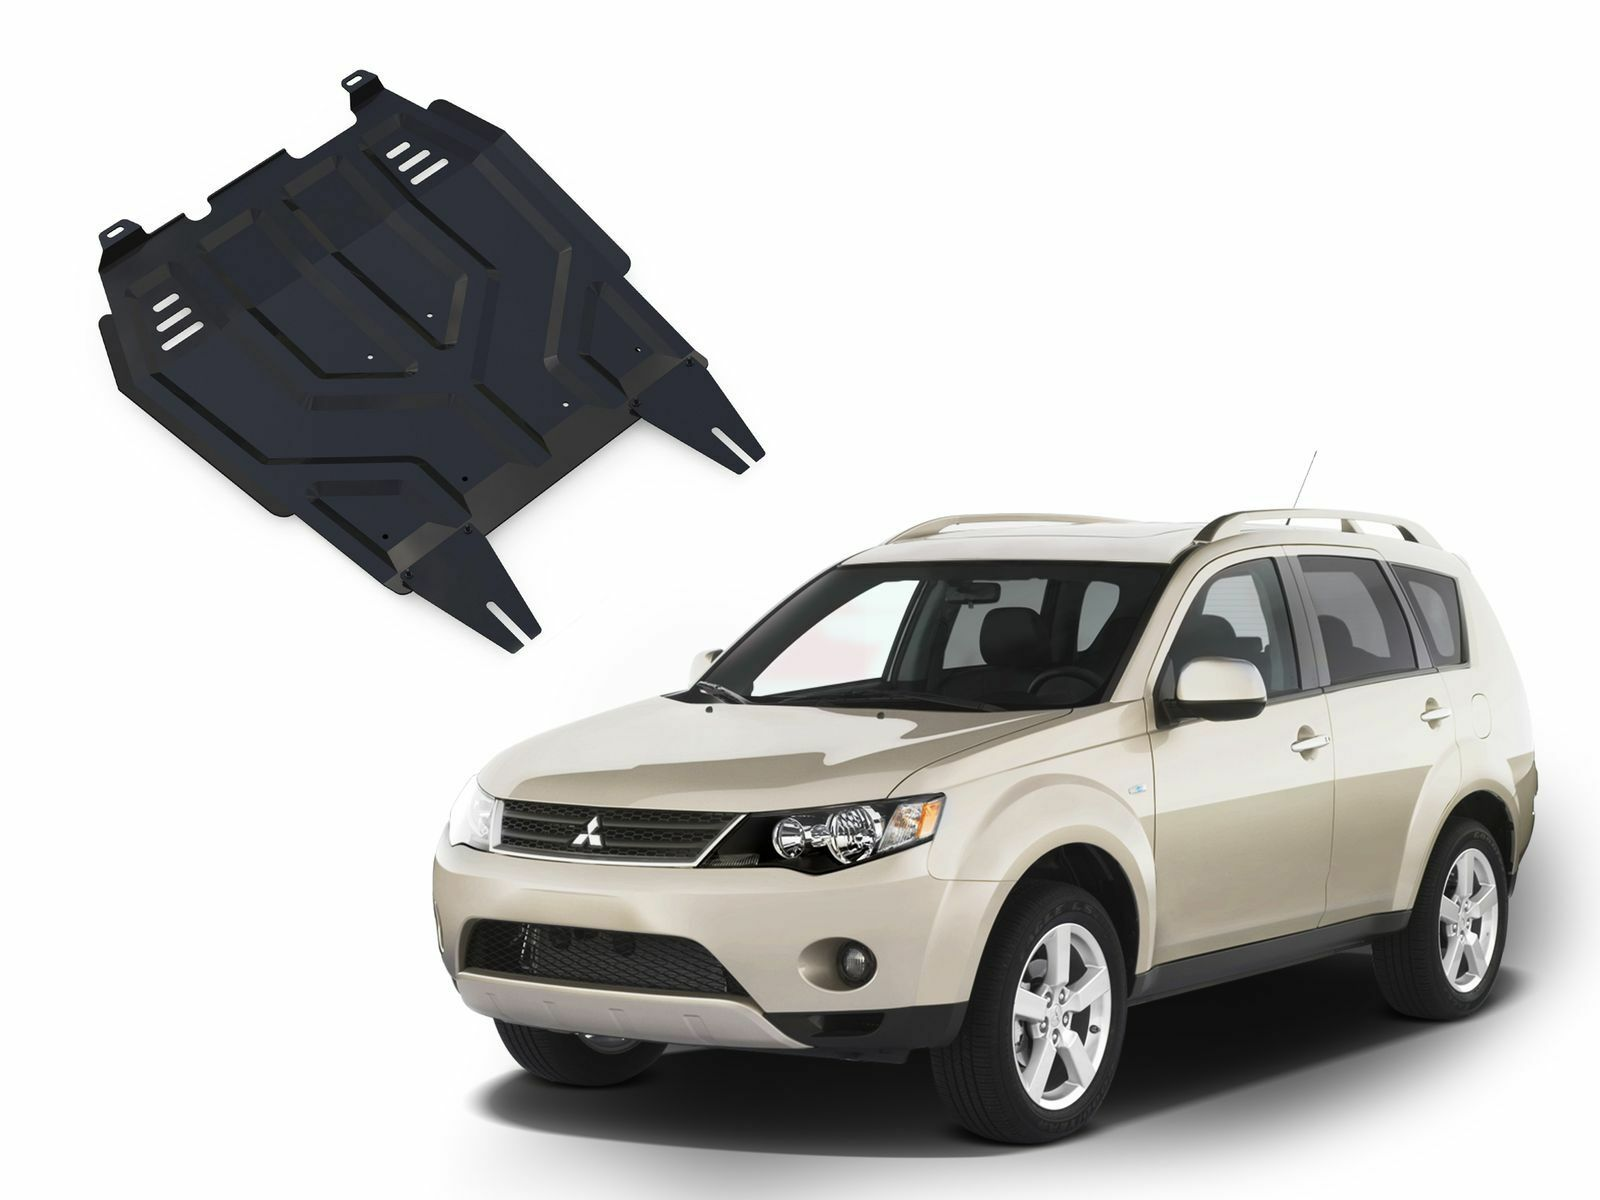 Details about MITSUBISHI OUTLANDER 2007-2012 ENGINE + GEARBOX GUARD SKID  PLATE UNDERTRAY